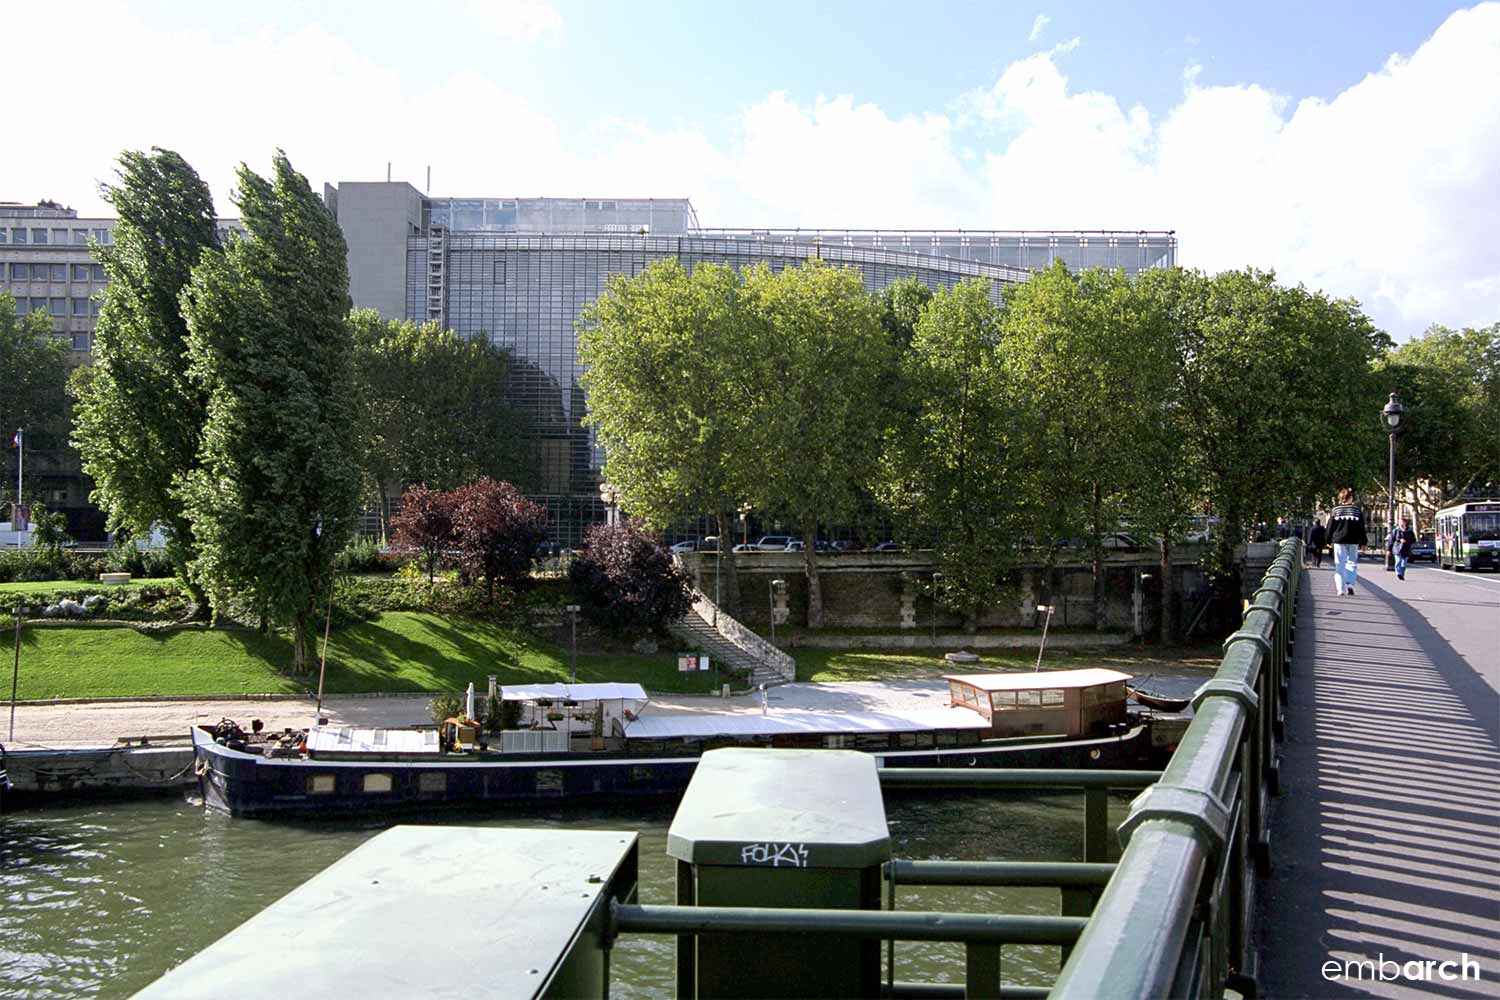 Arab World Institute - view from the River Seine